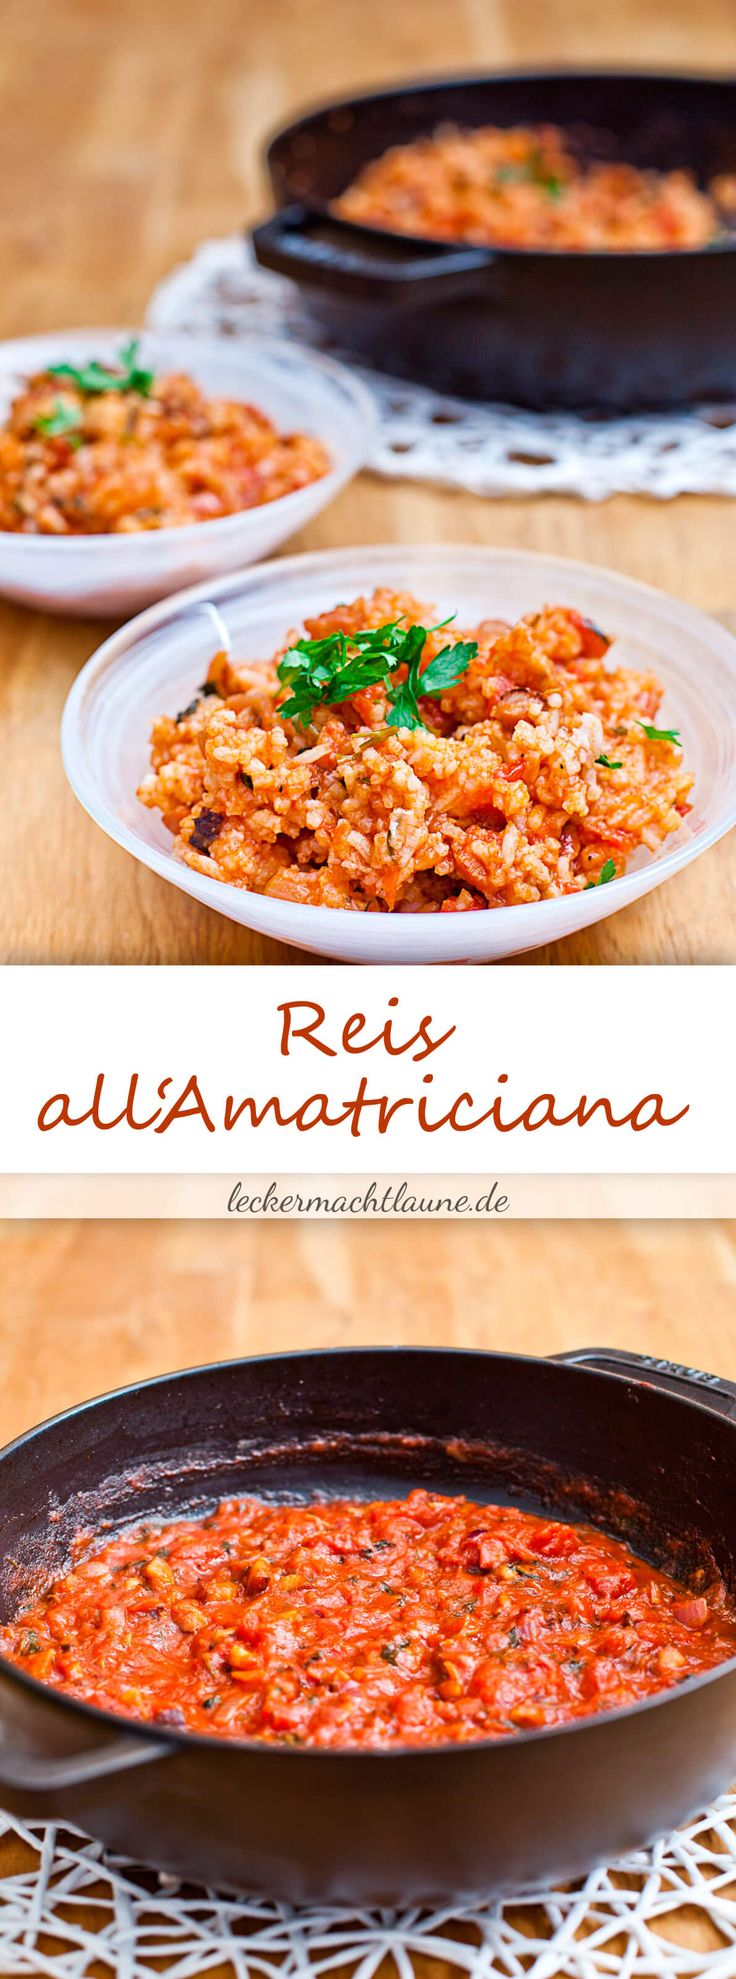 Reis all'Amatriciana {pfannengericht}